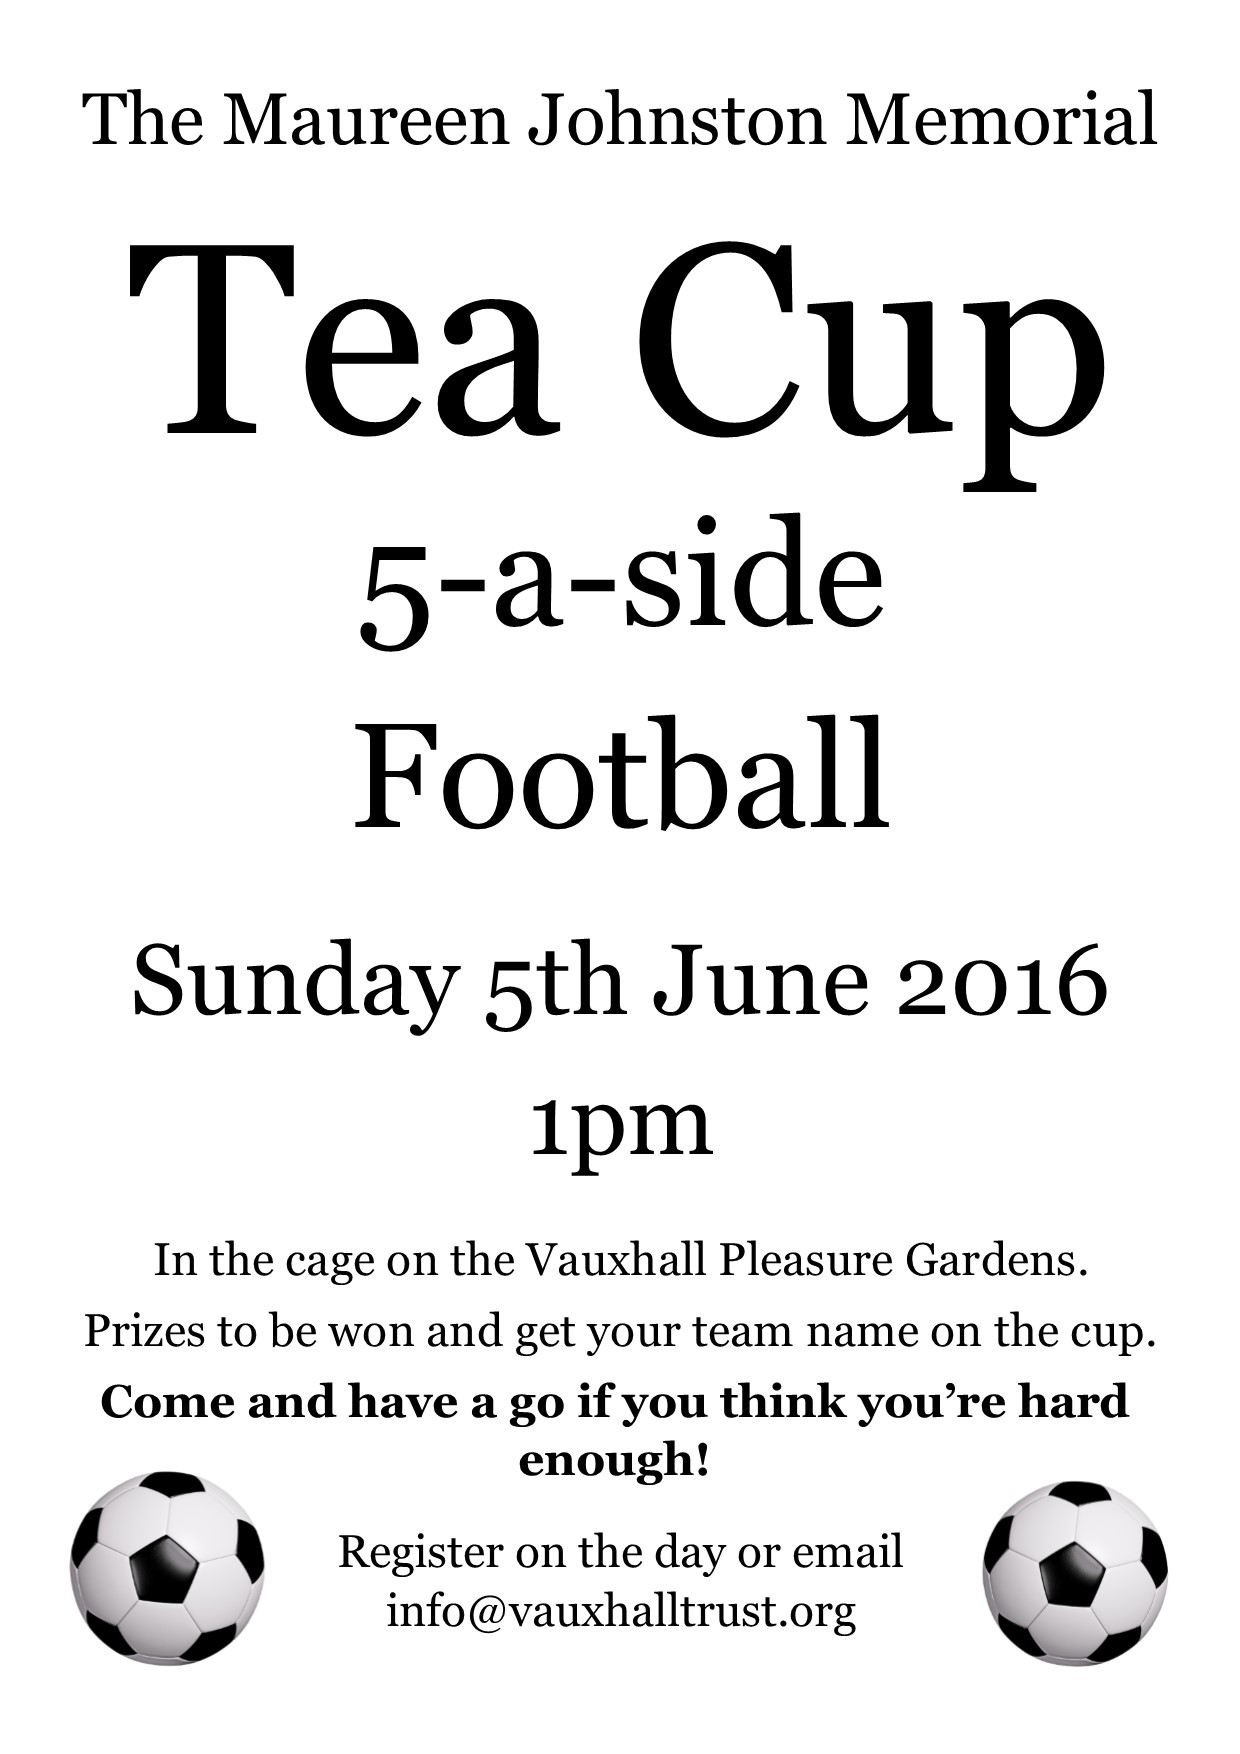 Tea Cup 5th June 2016 Poster.jpg